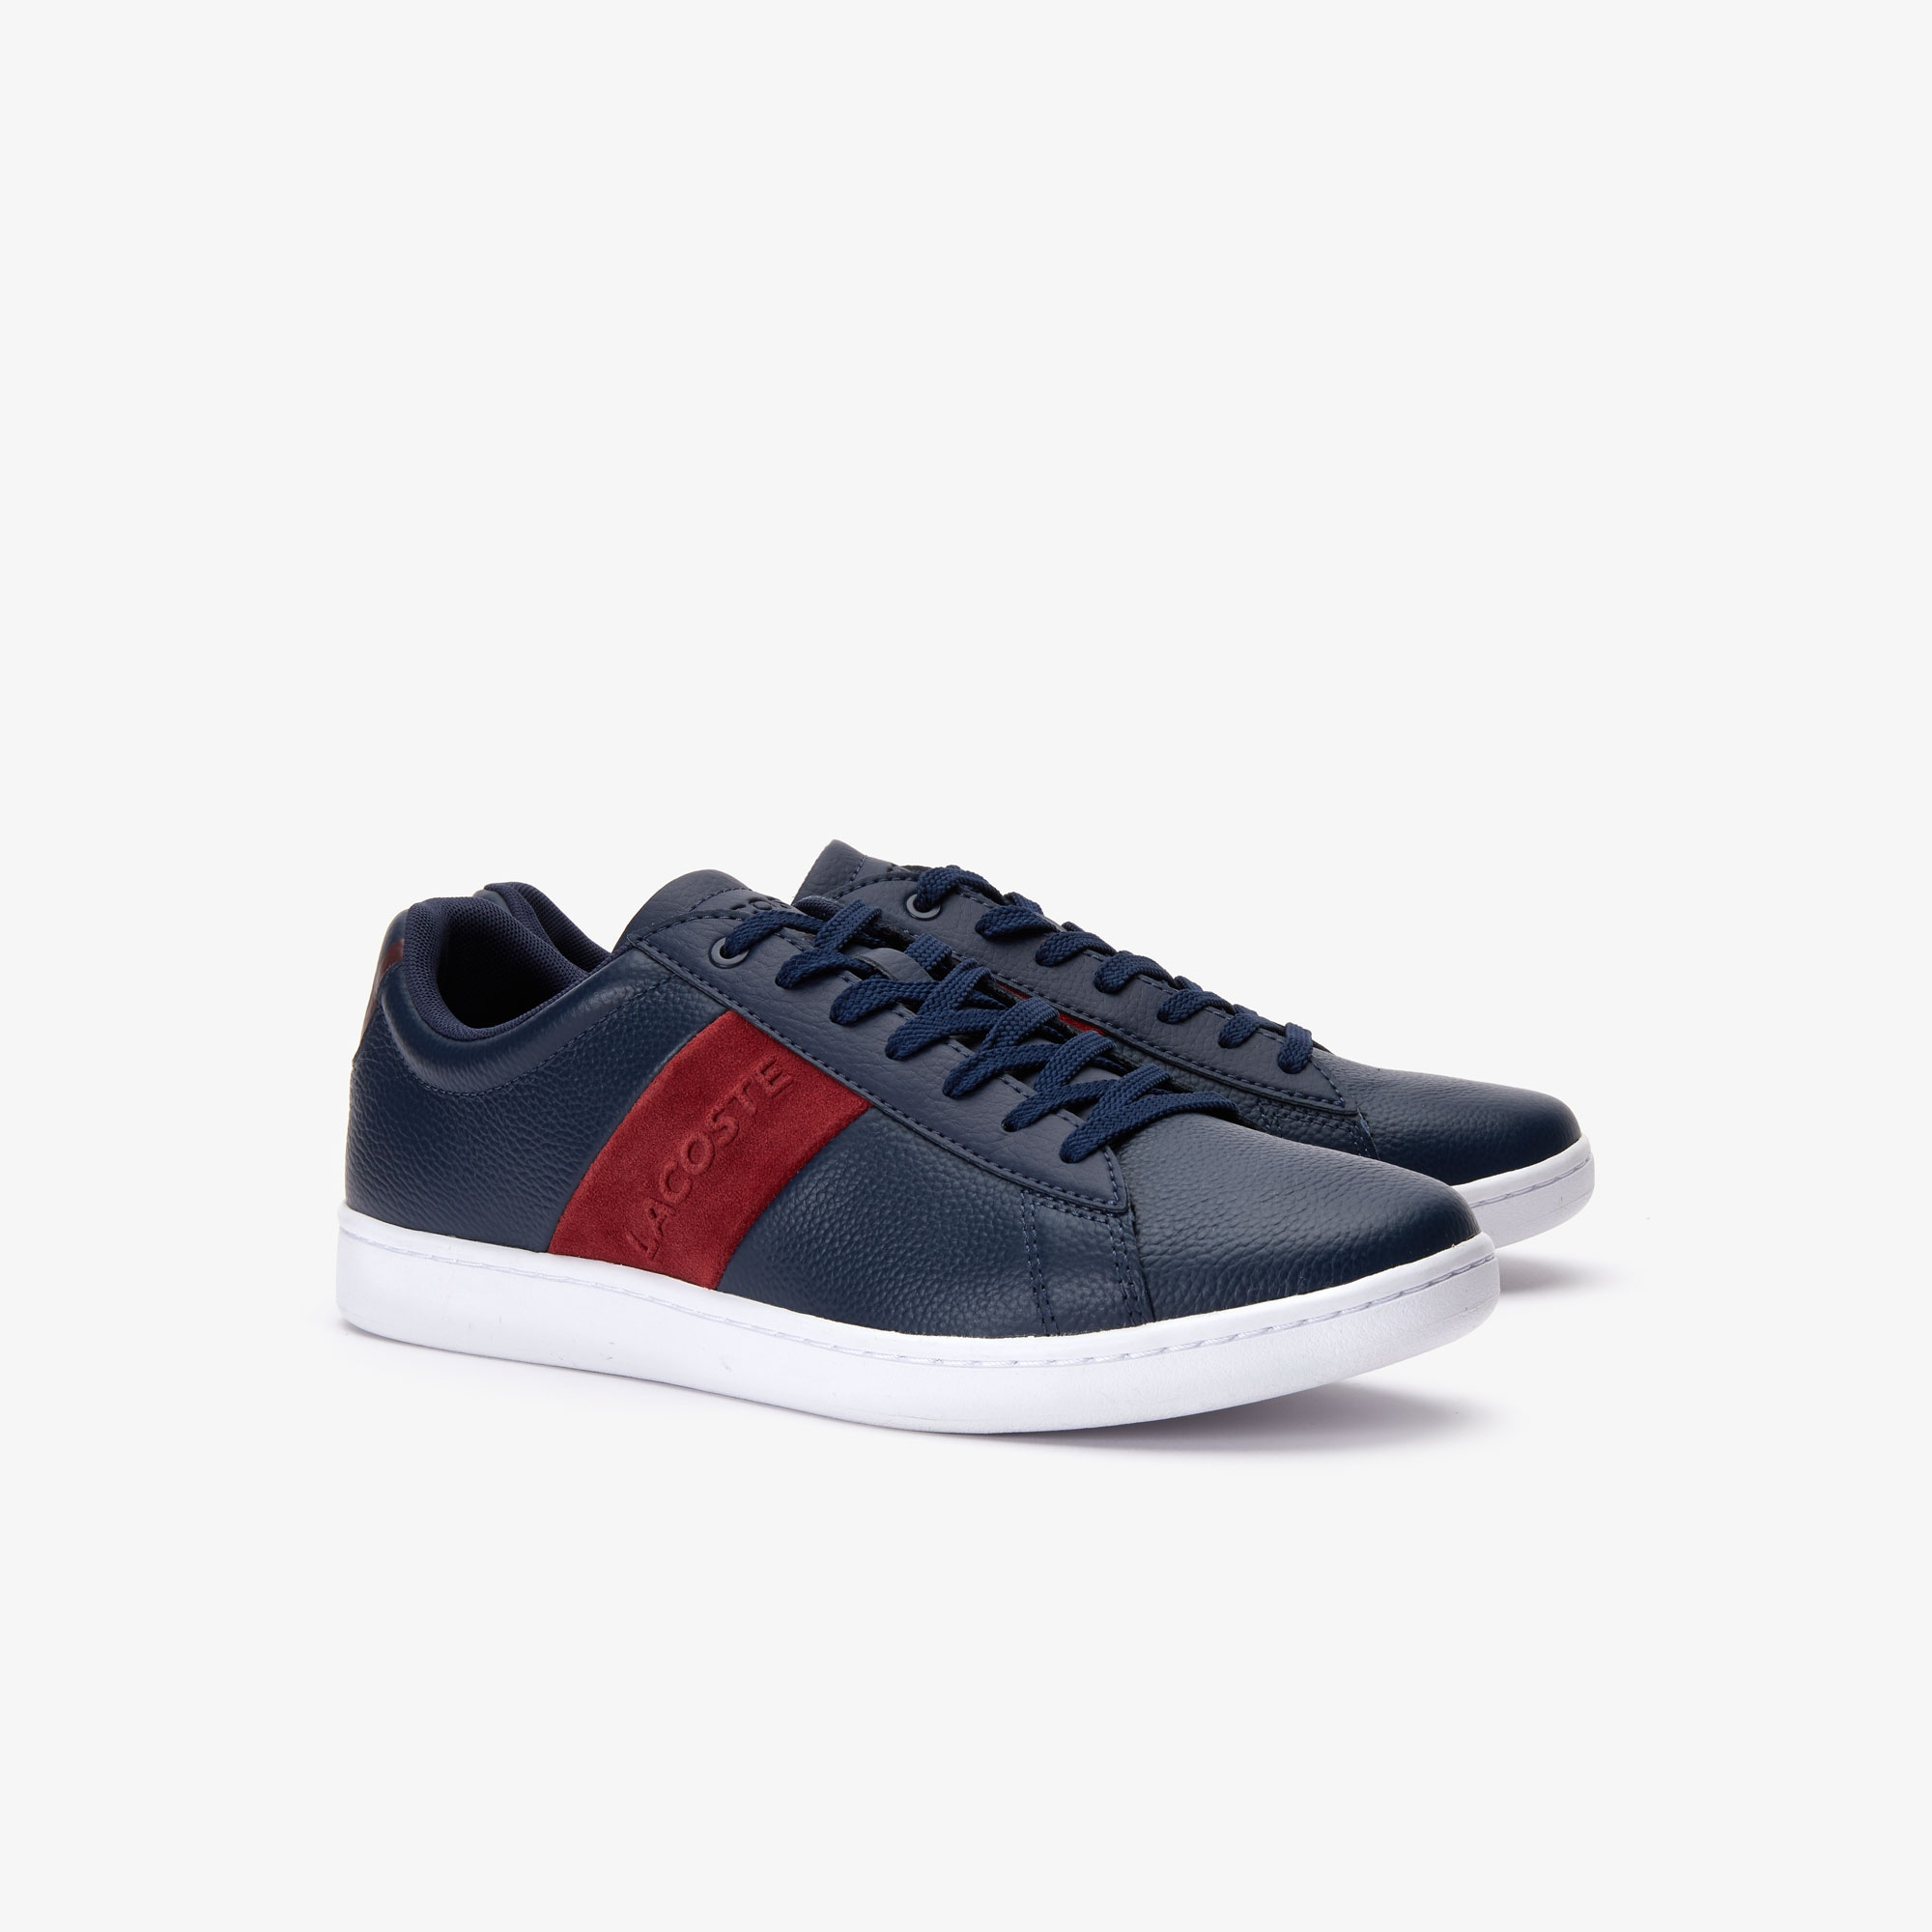 Men's Carnaby Evo Leather and Suede Sneakers